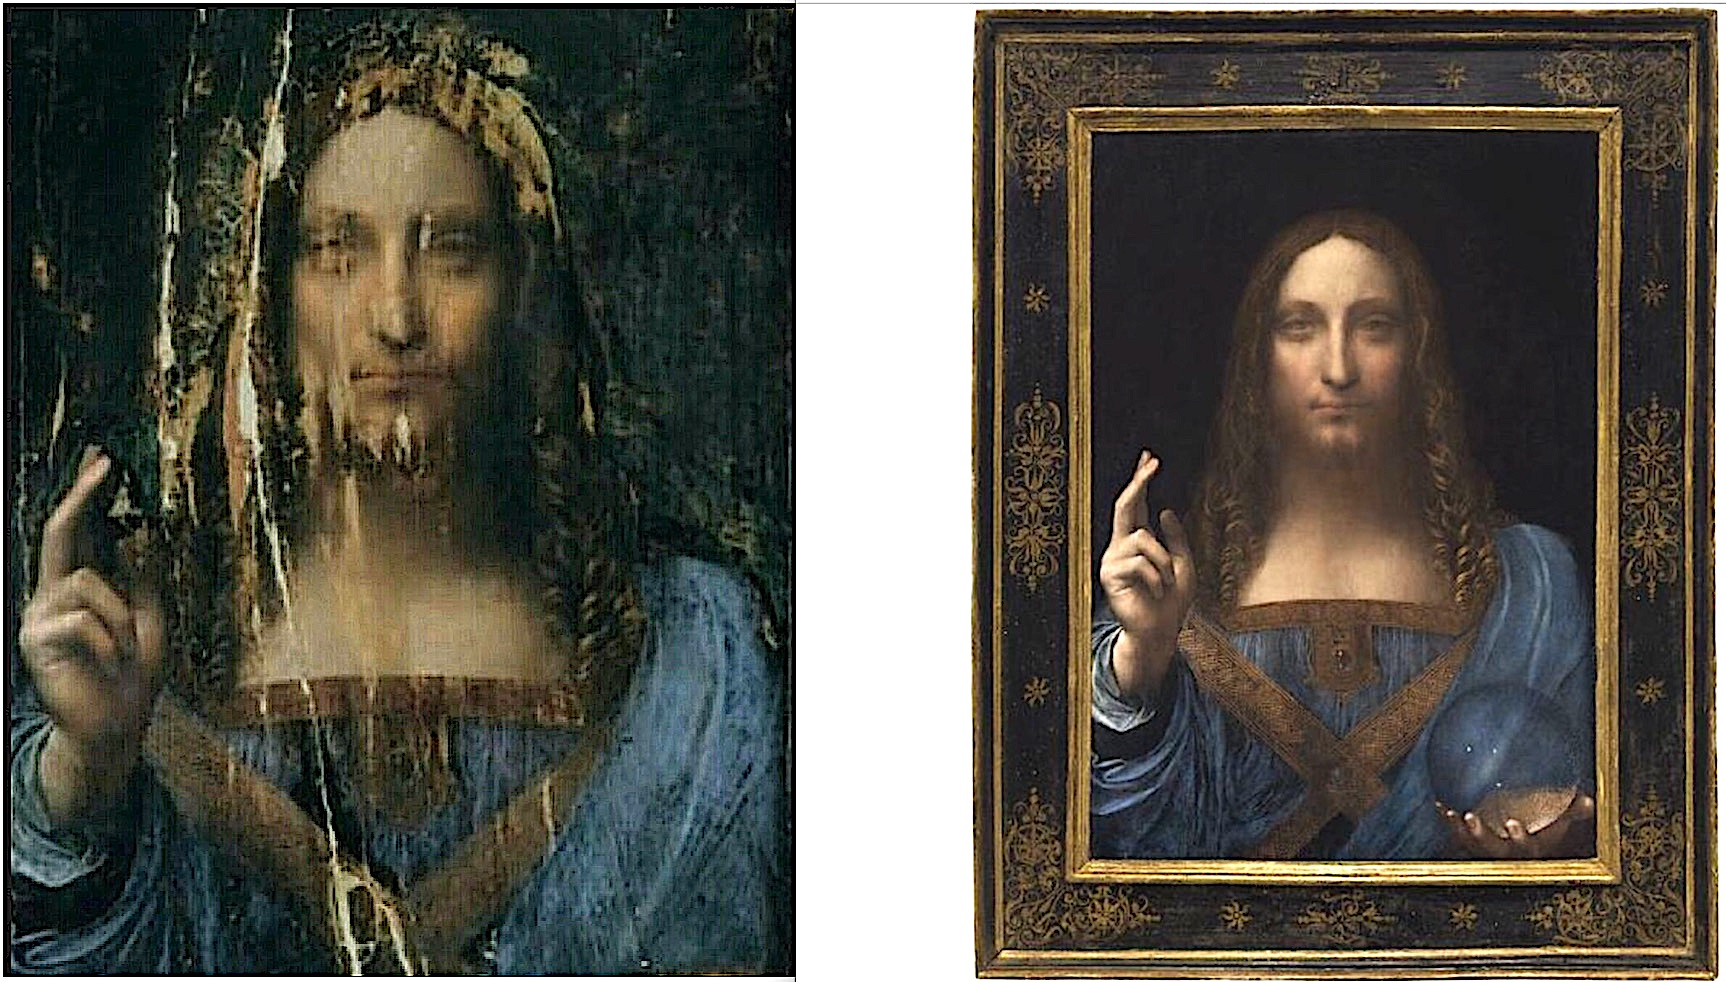 can botched over restored art repainted be saved clean an oil